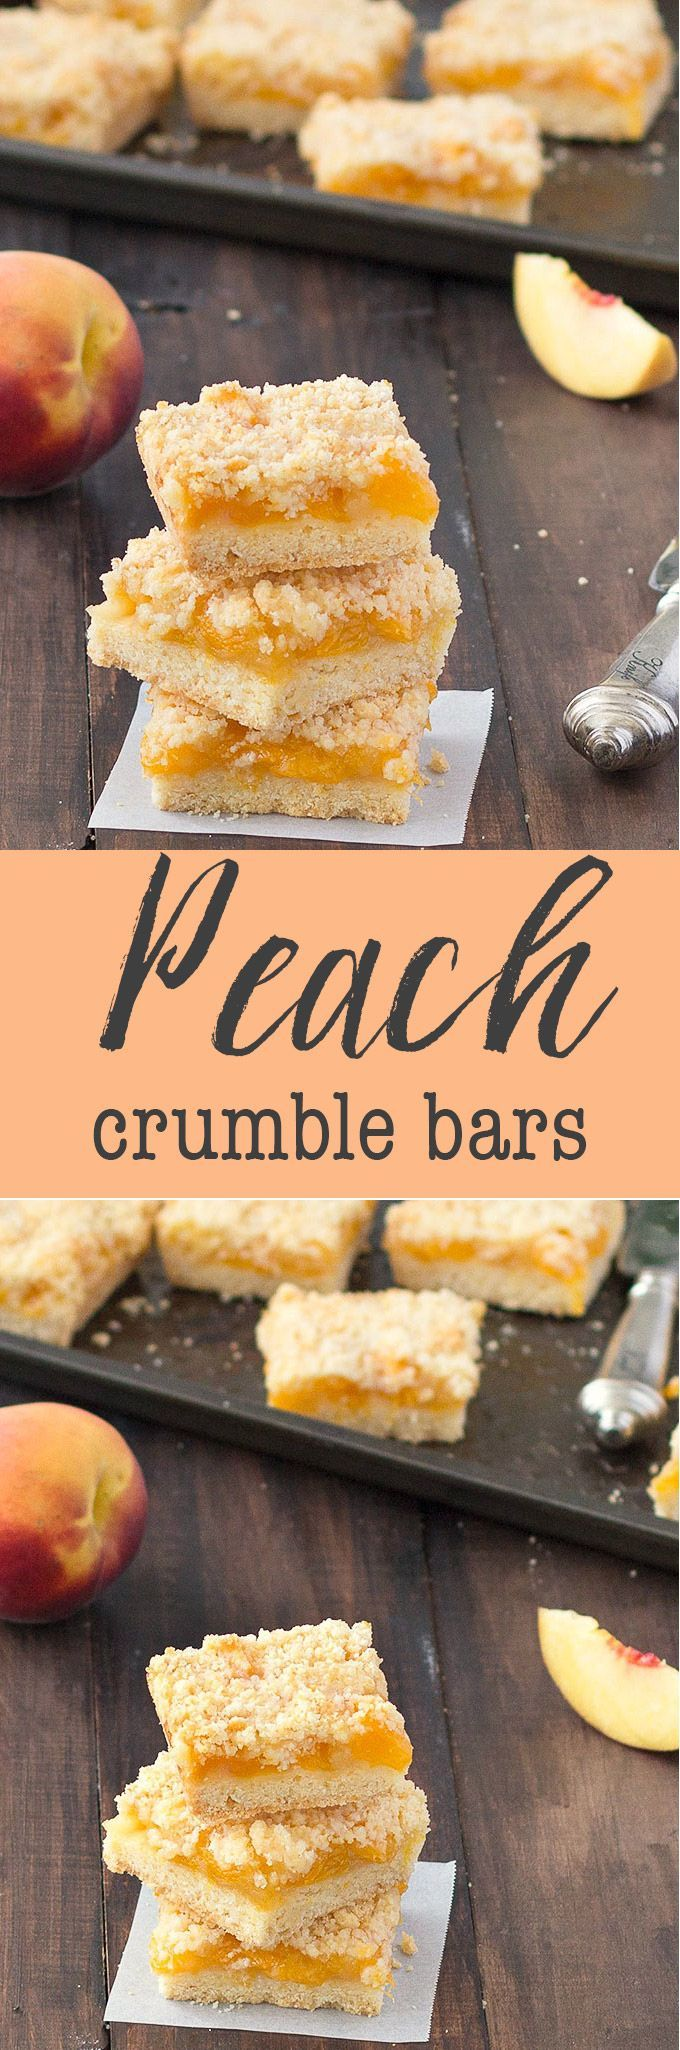 Peach Crumble Bars - the perfect way to use fresh peaches! Easy and delicious!